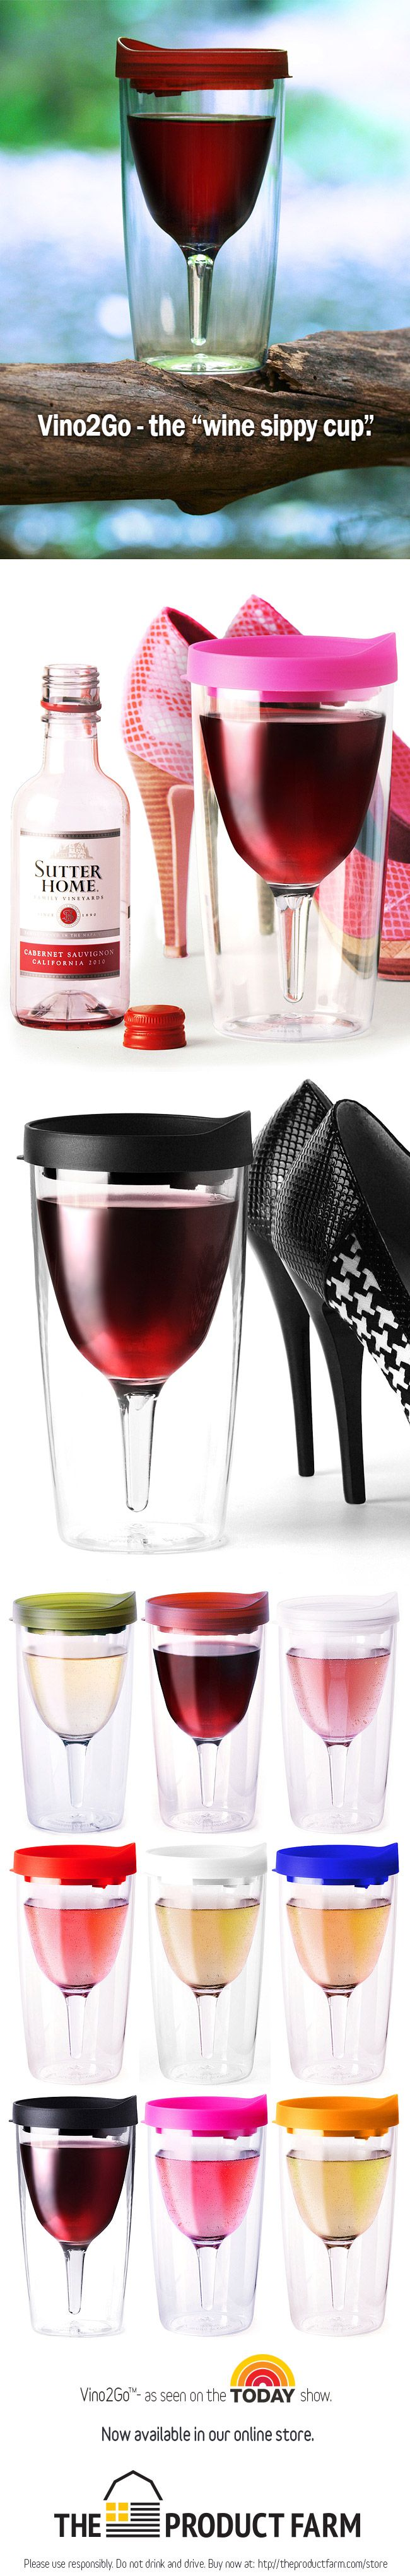 "Vino2Go™ - the ""Wine Sippy Cup"" as seen on the TODAY show. Now available in the store.- Dennis's present CHECK"